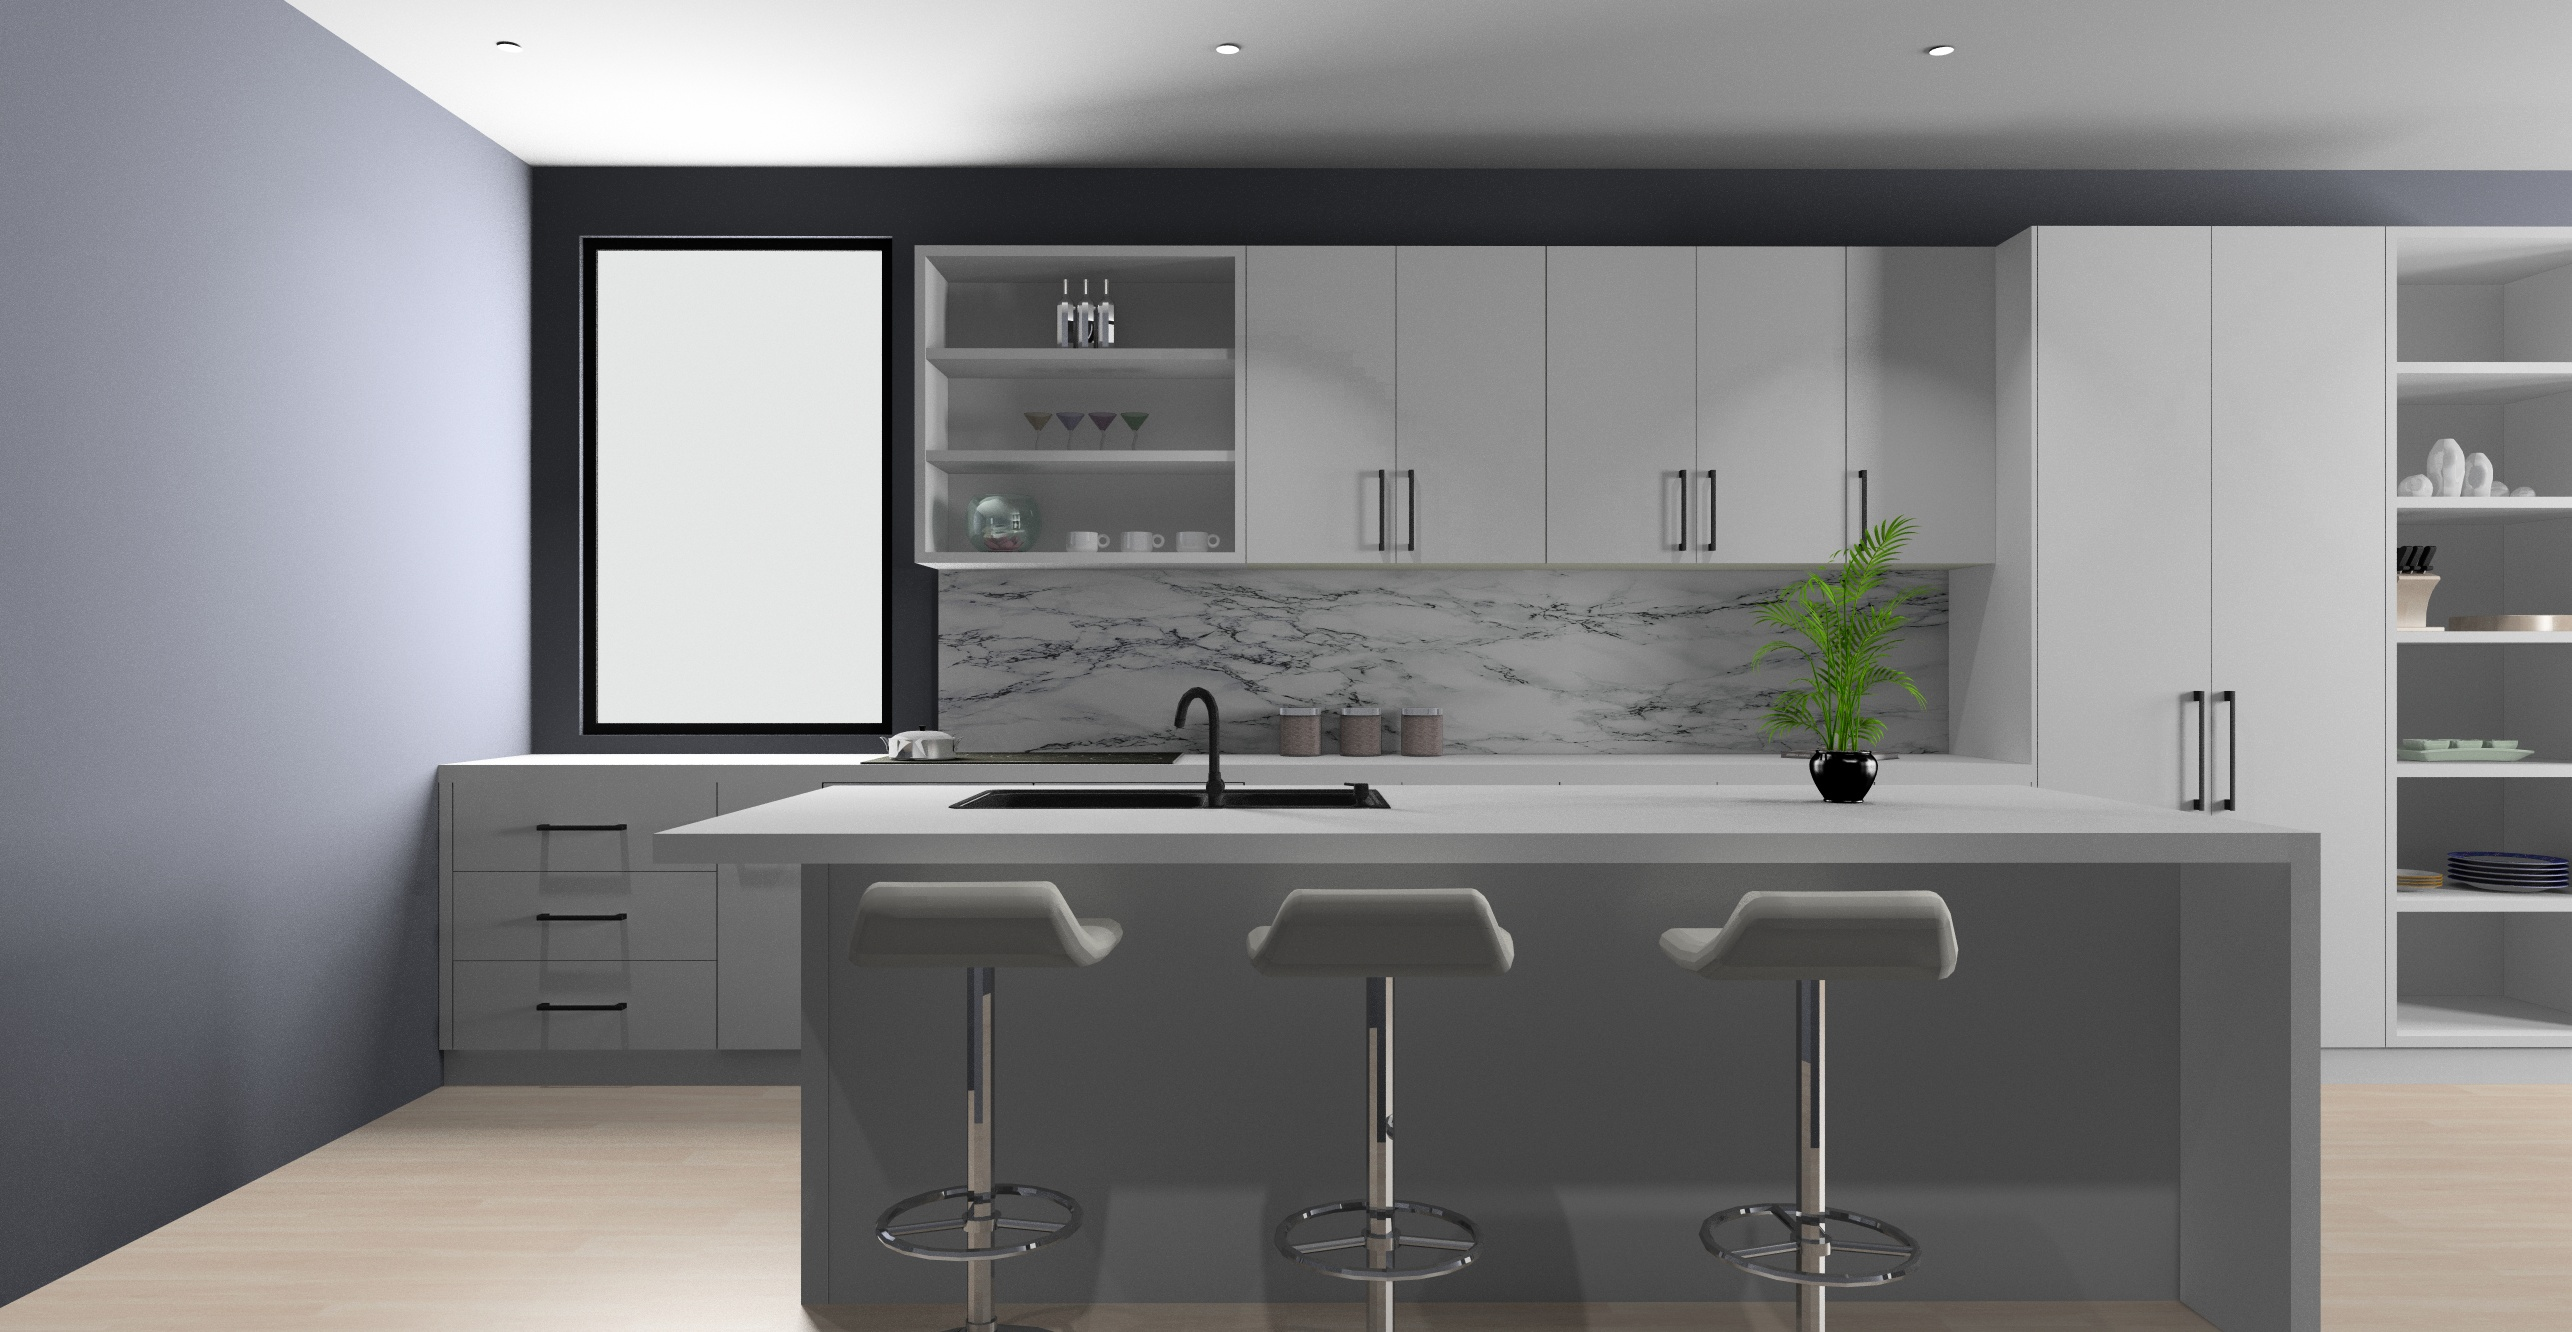 3D Design of a New Kitchen